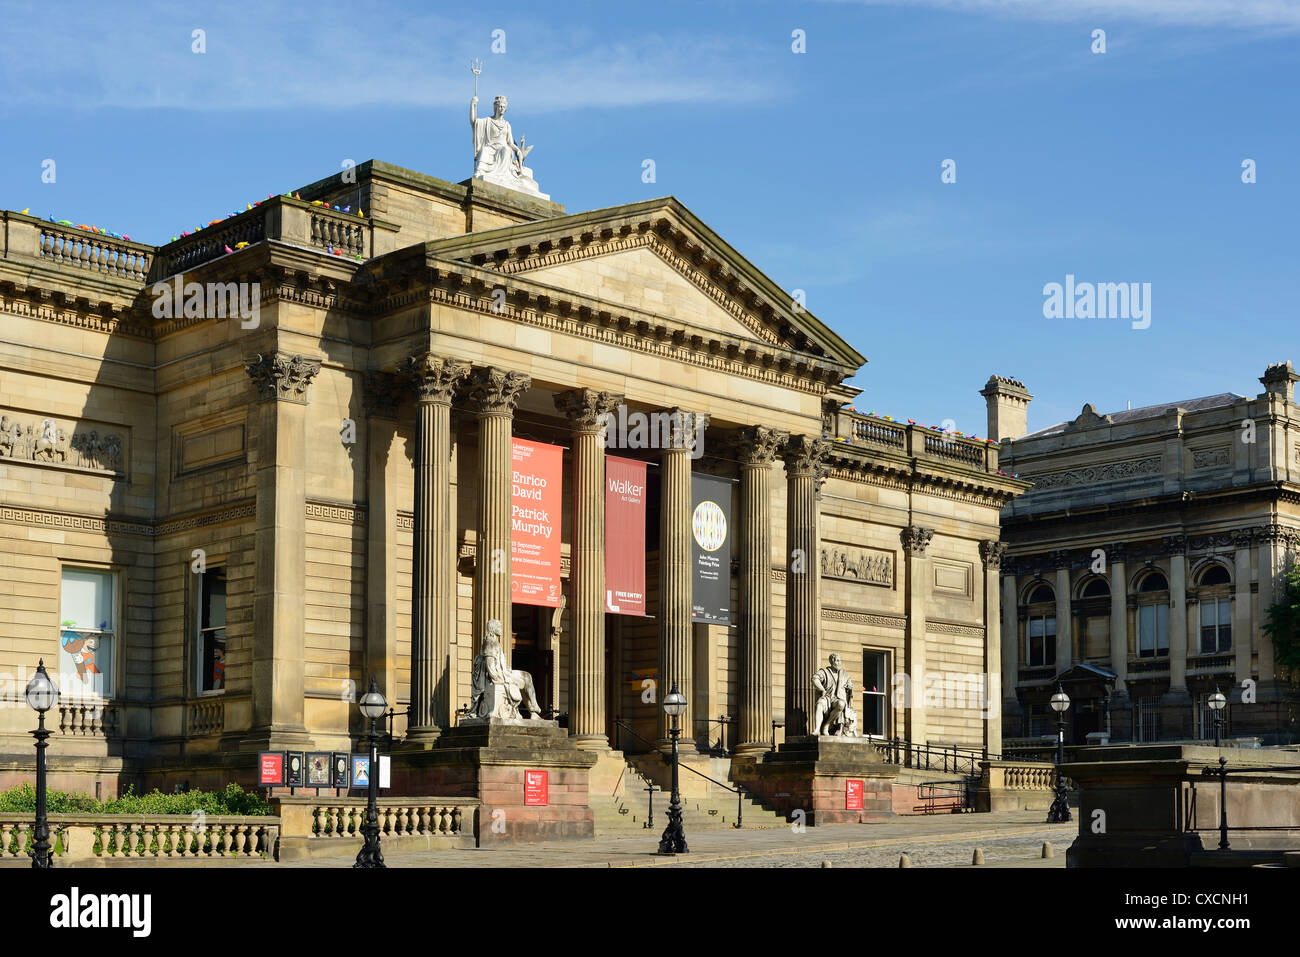 Walker Art Gallery Liverpool - Stock Image